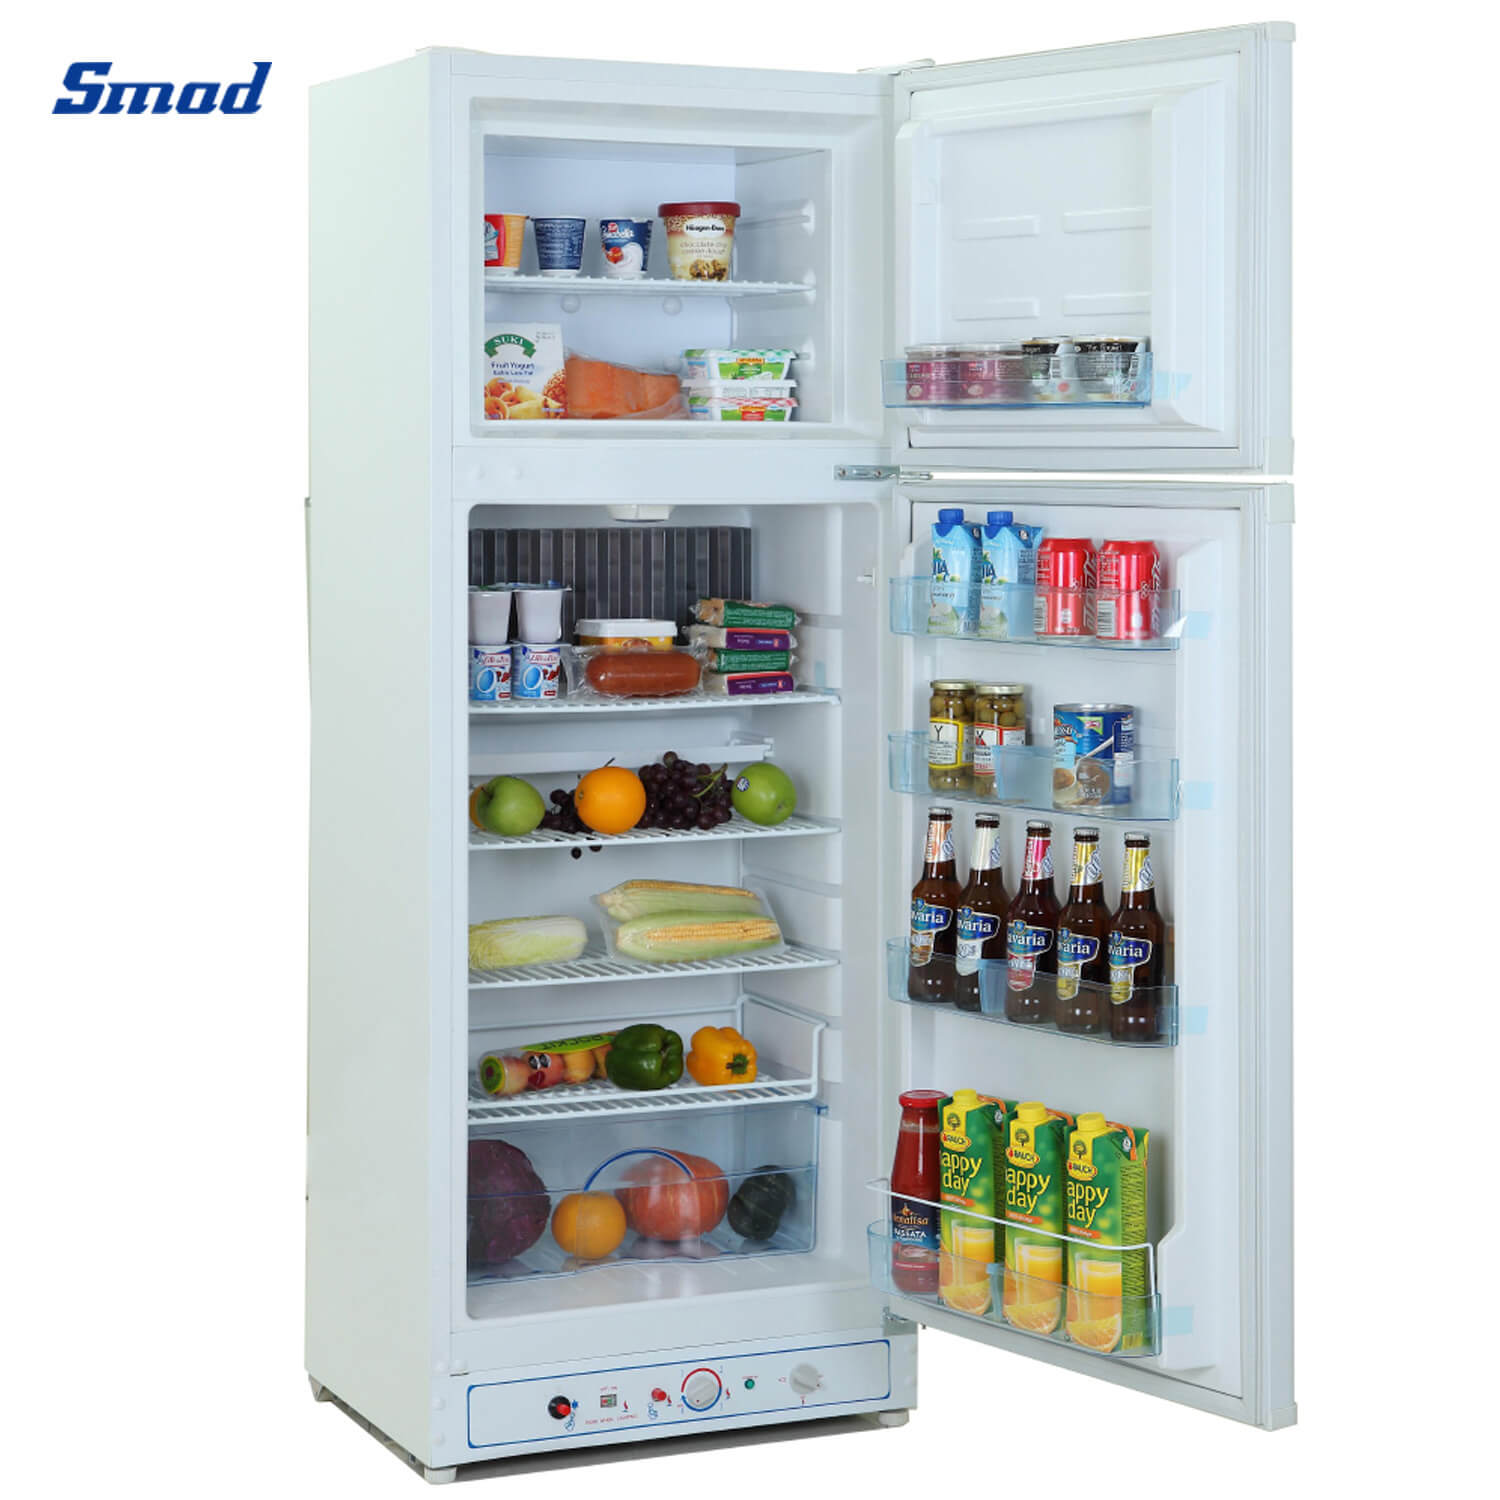 Smad gas refrigerator with big capacity